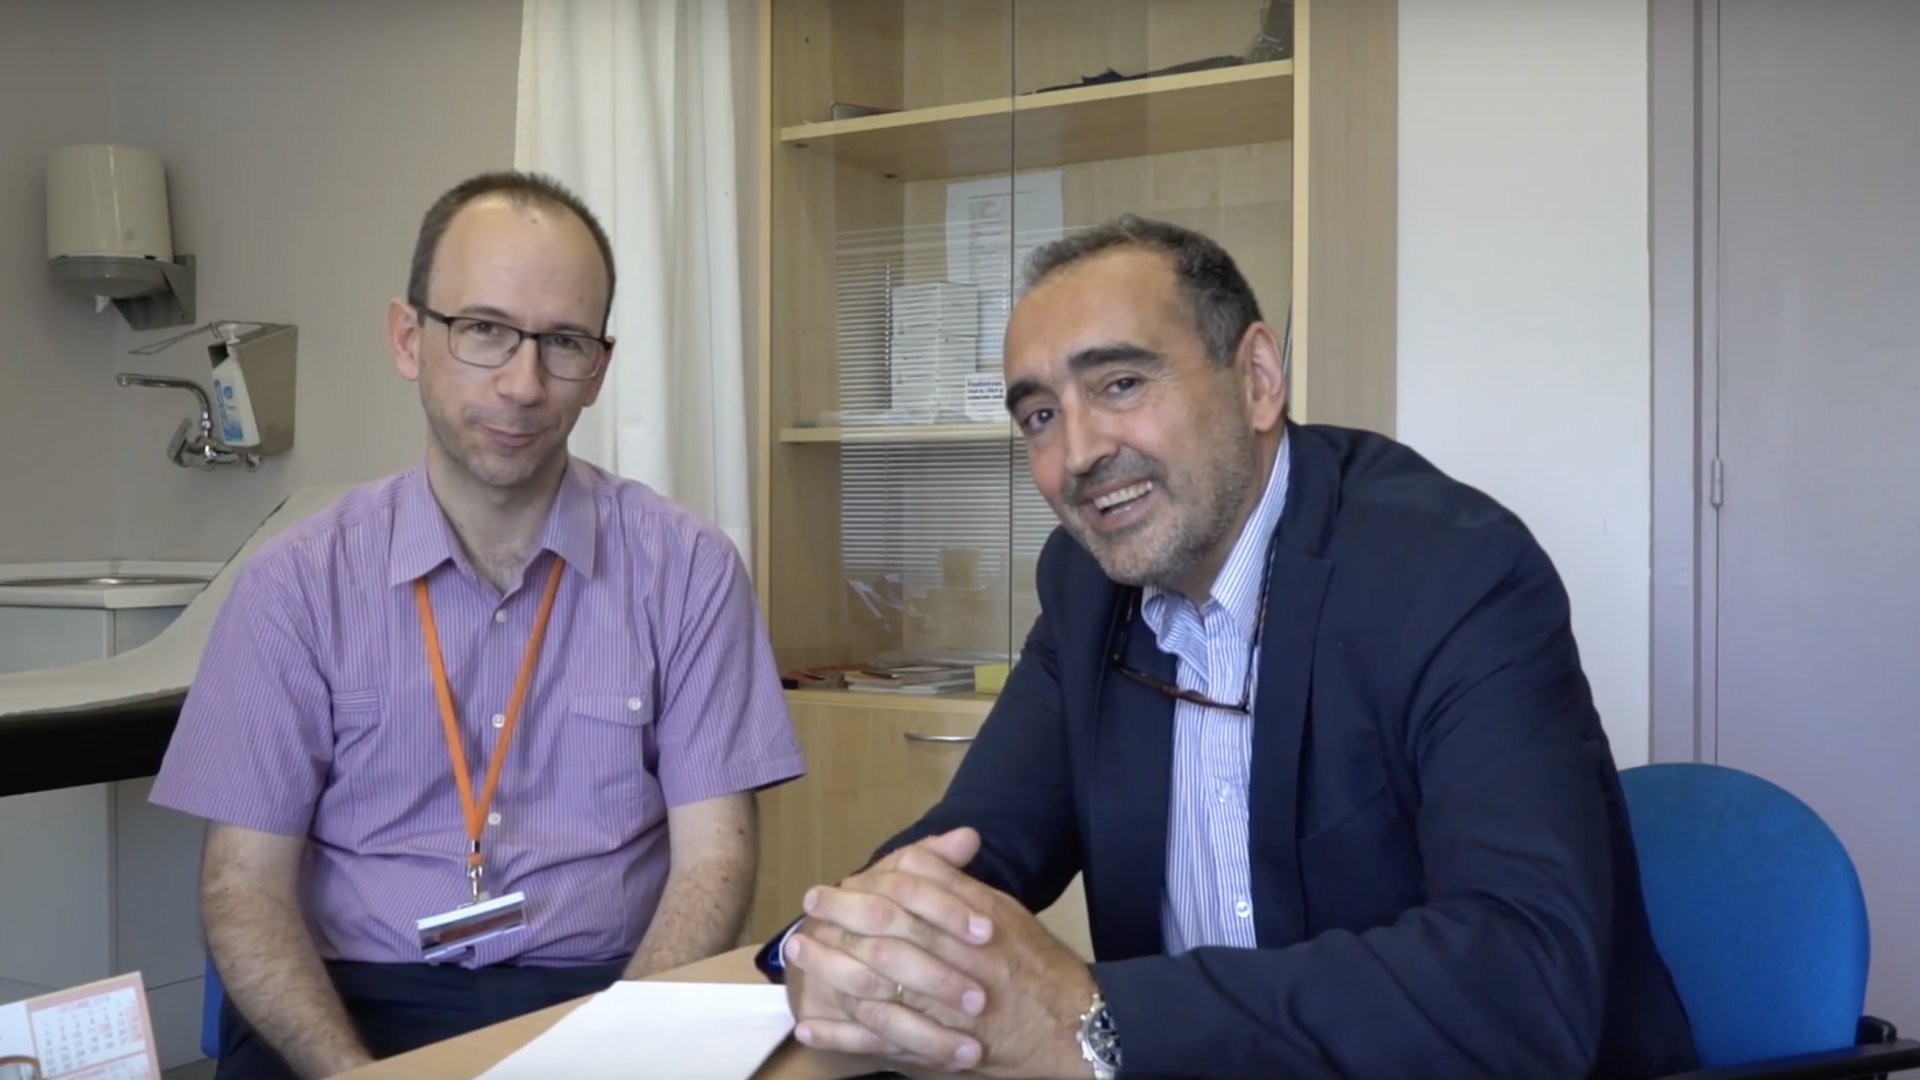 Ernest Nadal, group leader of Clinical Research in Solid Tumors Group, talks about his research in Oncobell